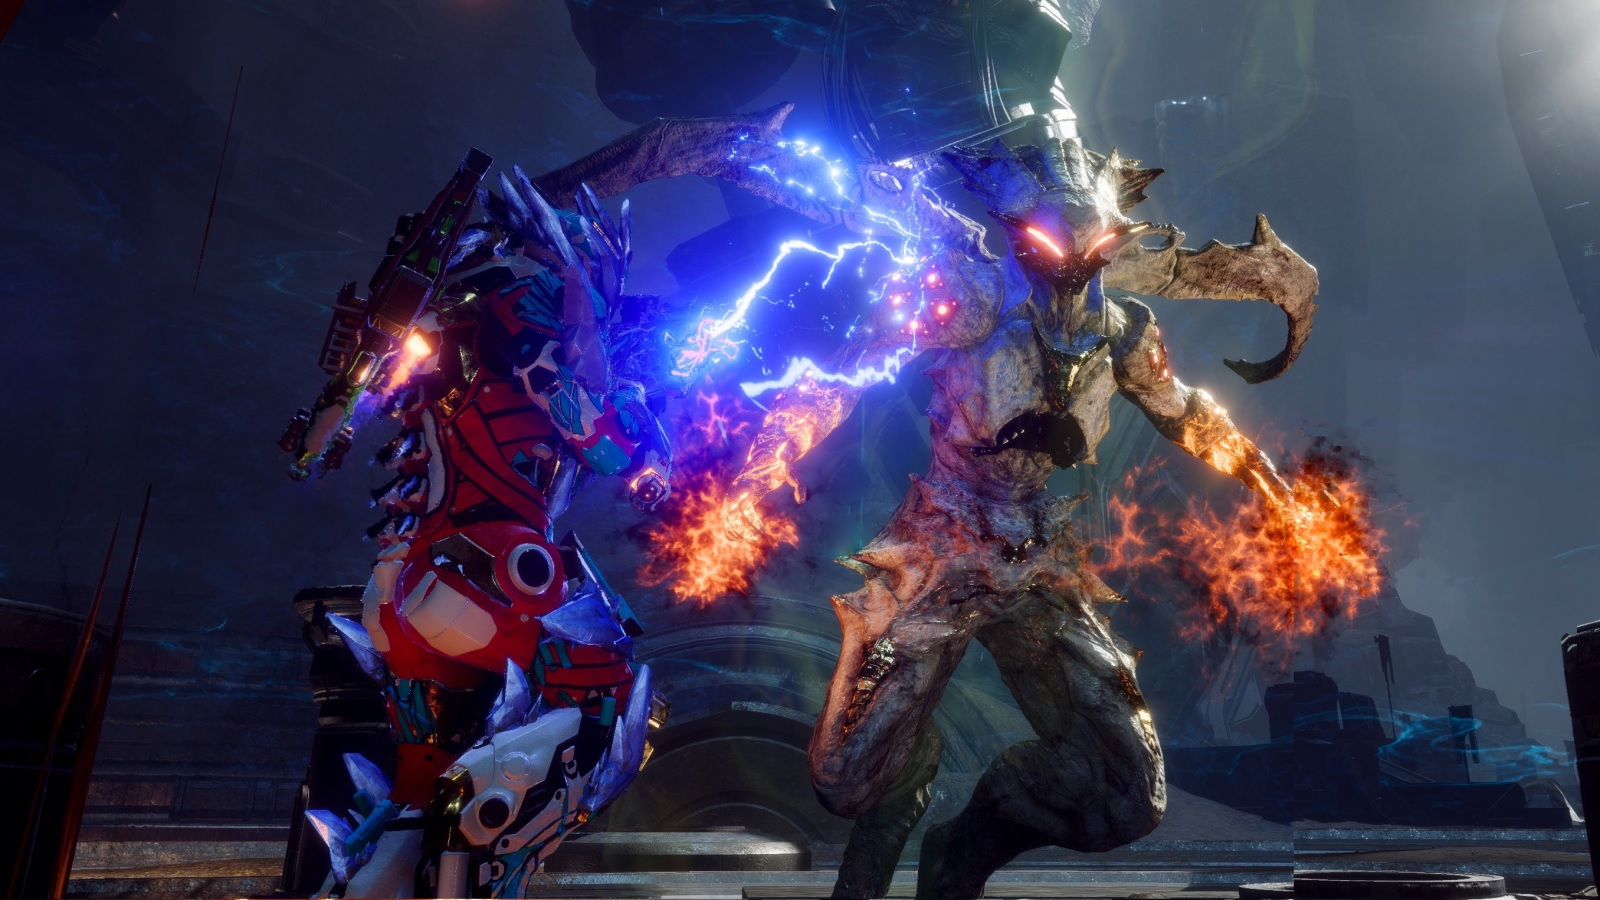 Anthem's Cataclysm event is now live